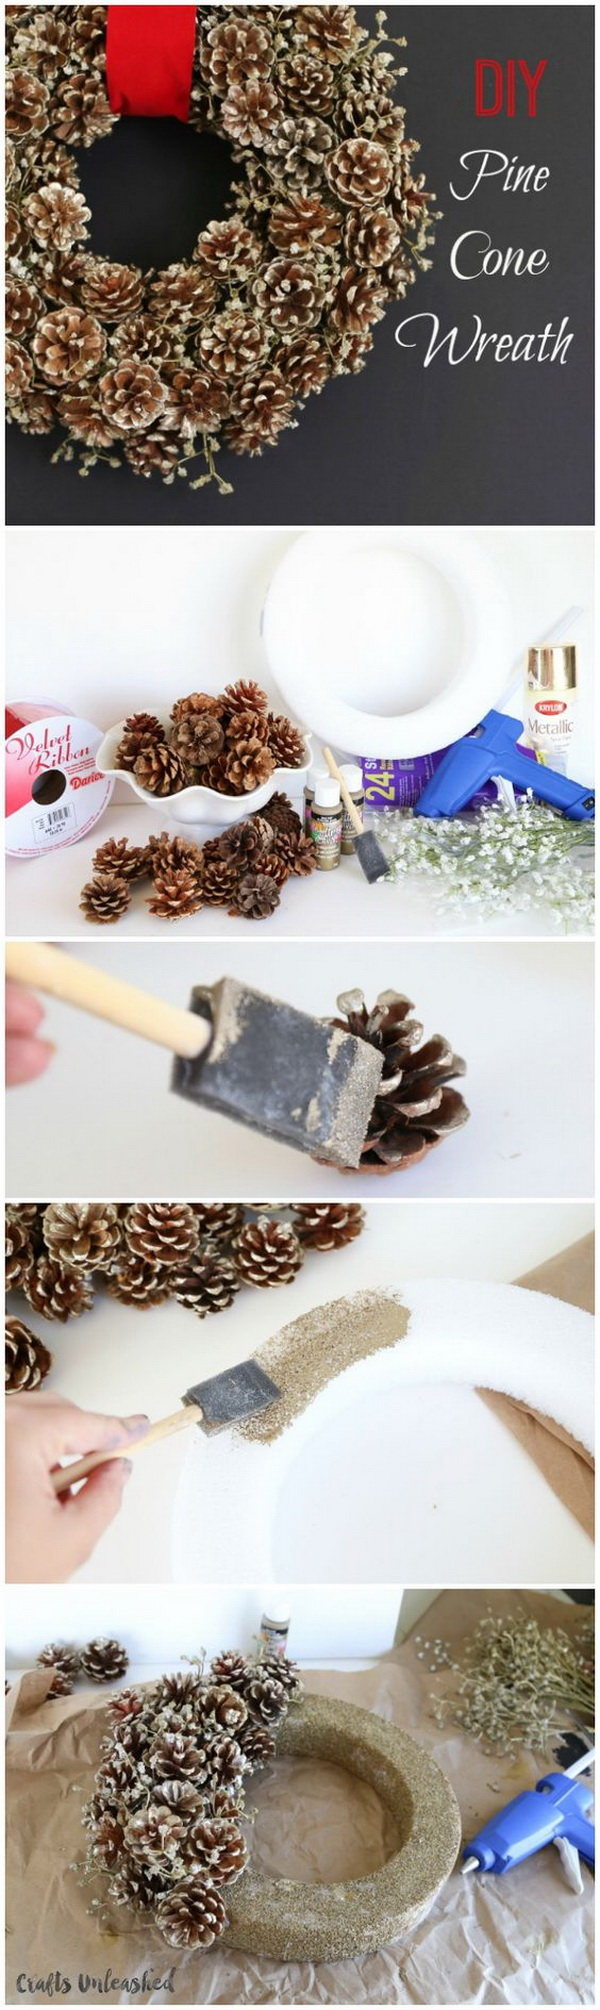 Winter Pine Cone Wreath DIY. Create a simple pine cone wreath for your fall and winter holiday decorating. Love the rustic warm it brings to our decor!